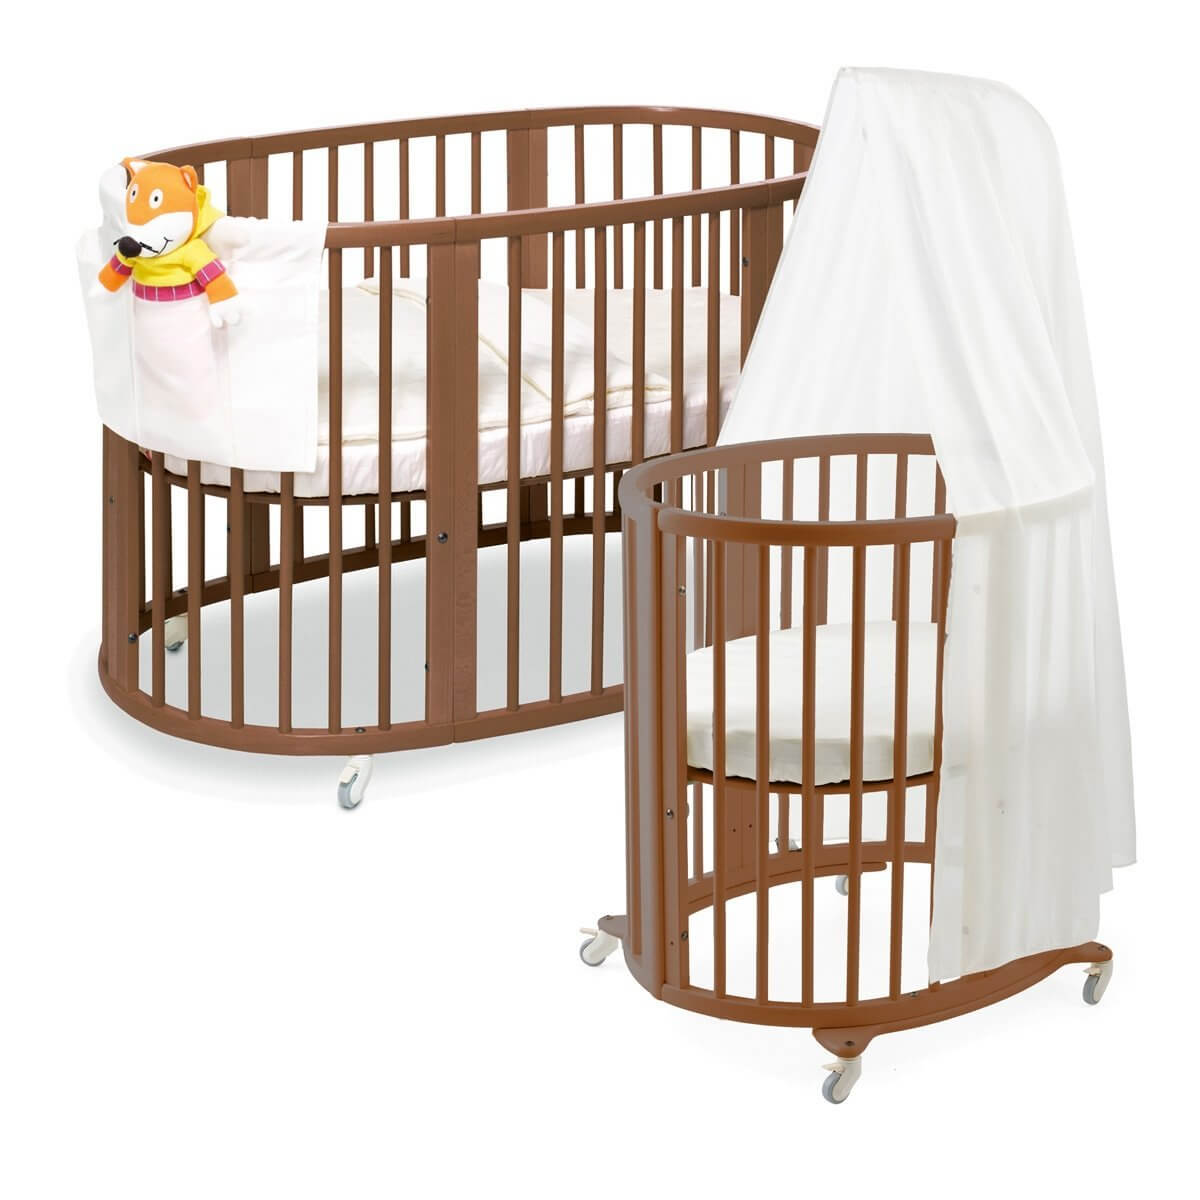 This lengthy oval crib from Stokke is designed to grow with your child. Initial circular shape can be enhanced with extra parts, extending into lengthy sleeper for larger children. Sustainable beechwood construction and soft, rounded edges make this durable and safe, while caster feet add portability.